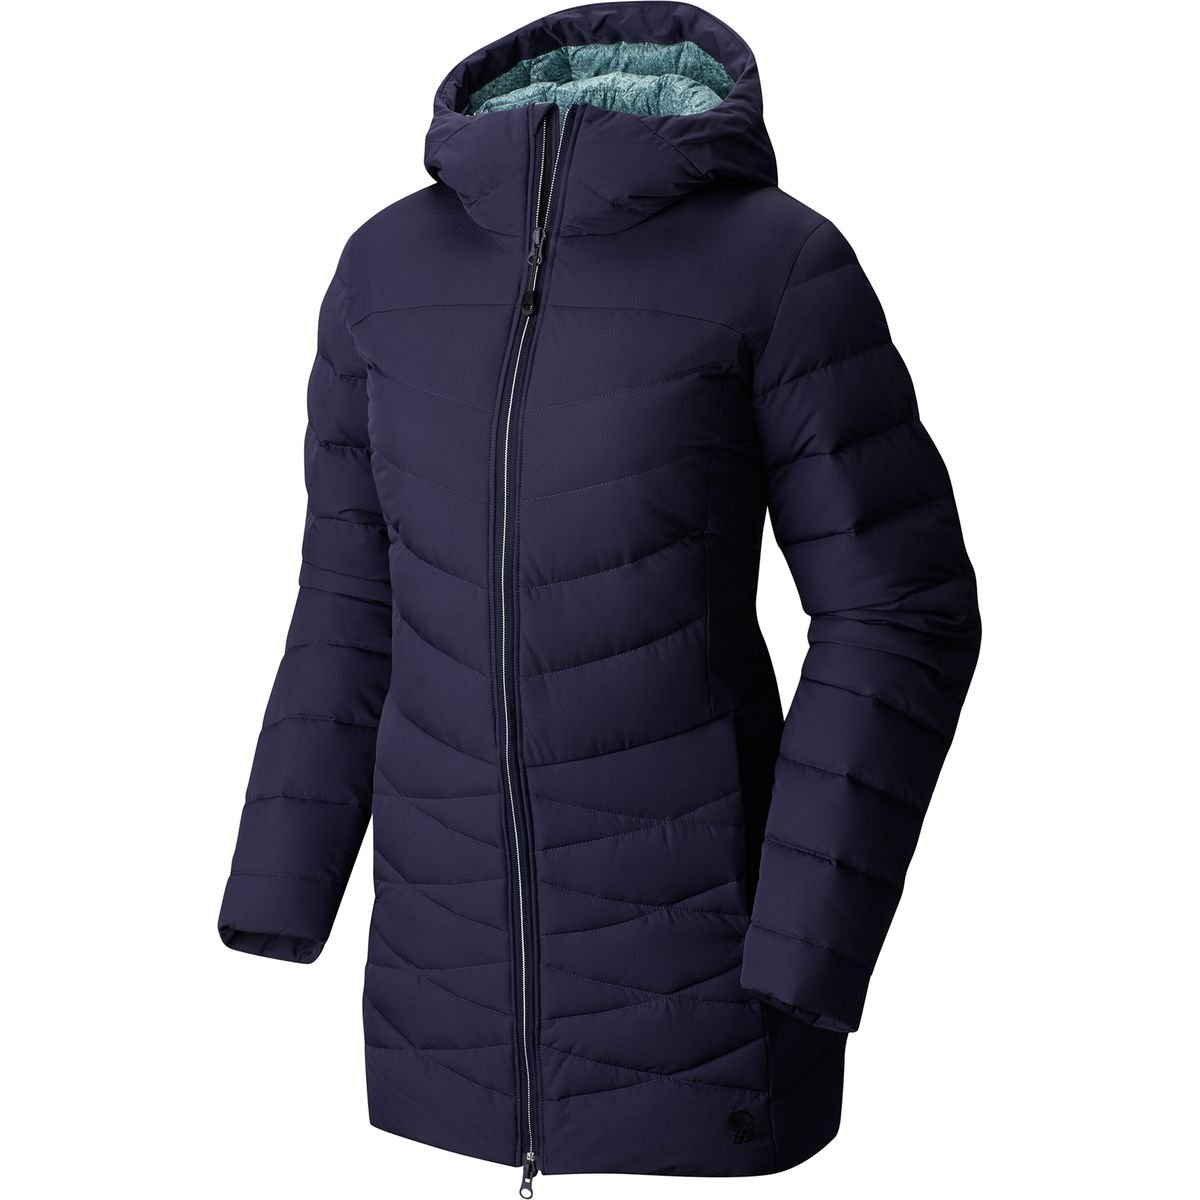 3E0G Mountain Hardwear Womens Downtown Coat Black Discounted Price Products Hot Sale